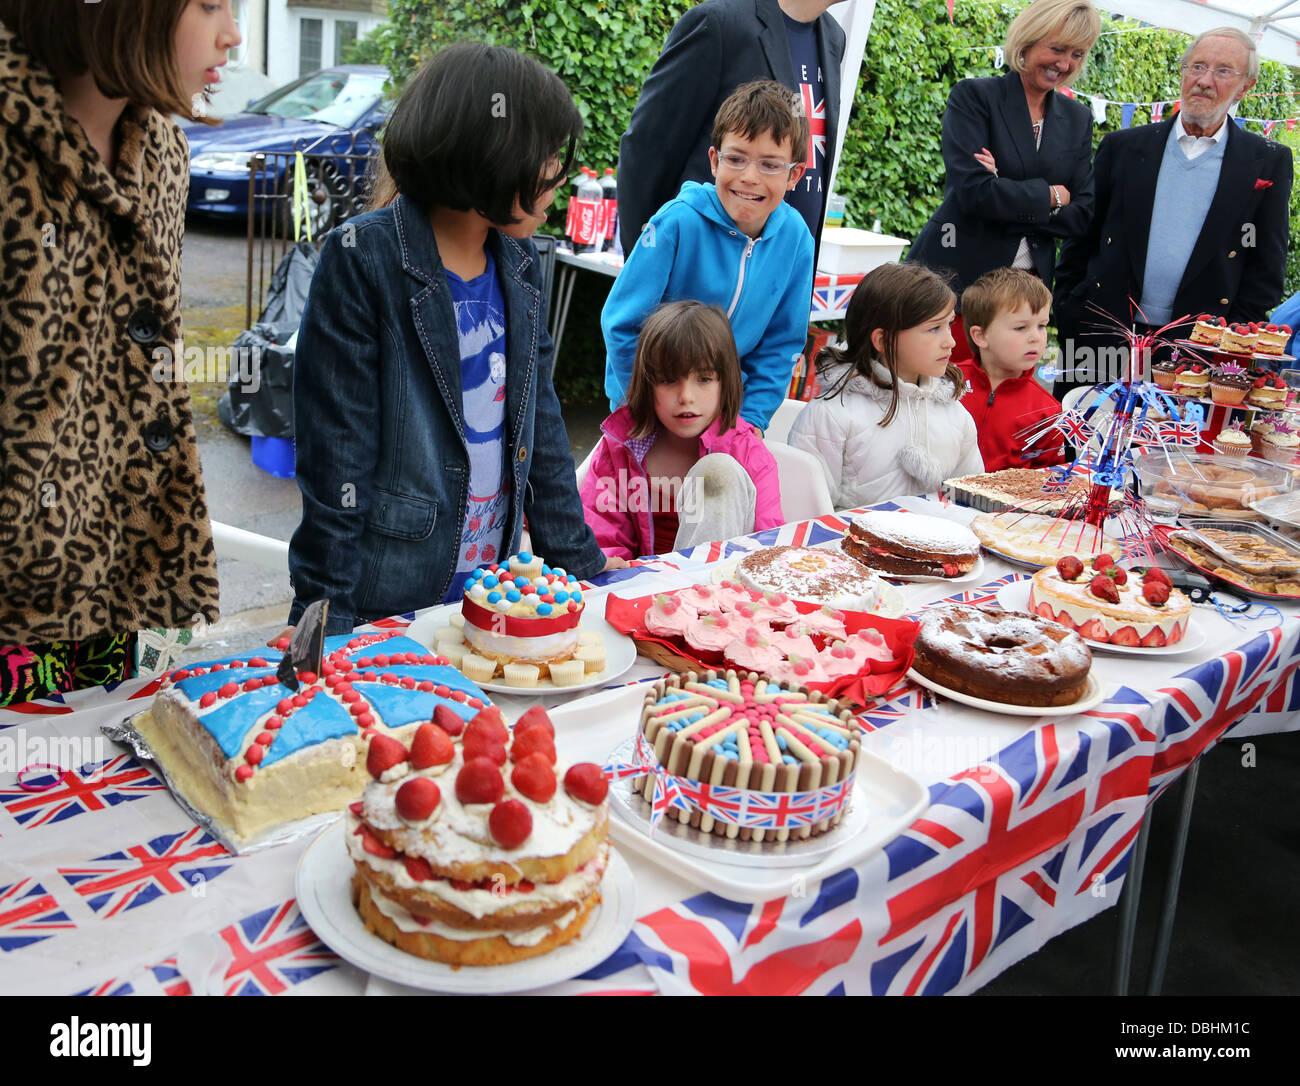 People Looking At Cakes During Cake Competition At Street Party During Queen's Diamond Jubilee Surrey England - Stock Image